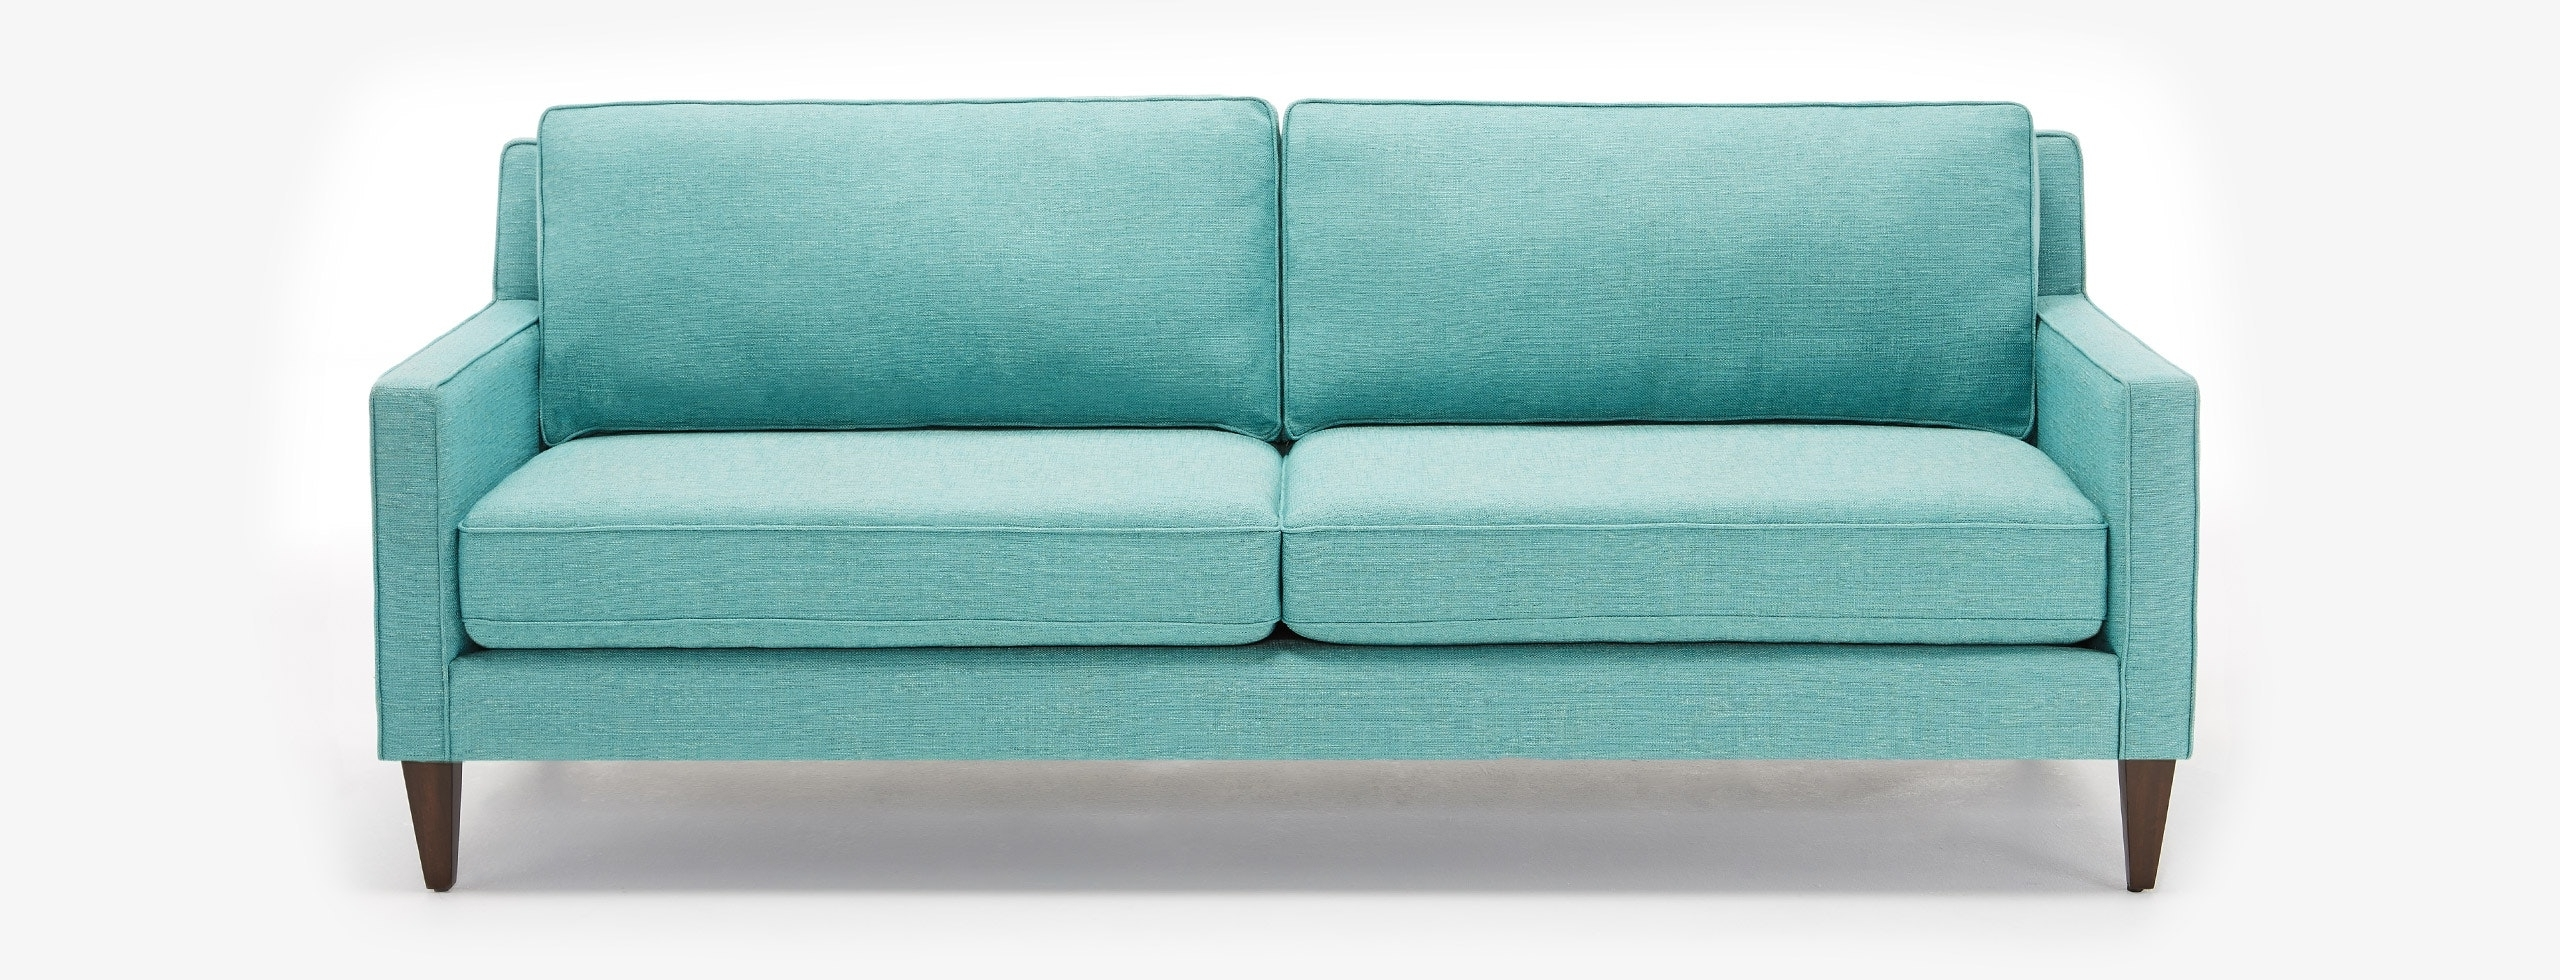 Joybird Intended For Trendy Aqua Sofas (Gallery 16 of 20)